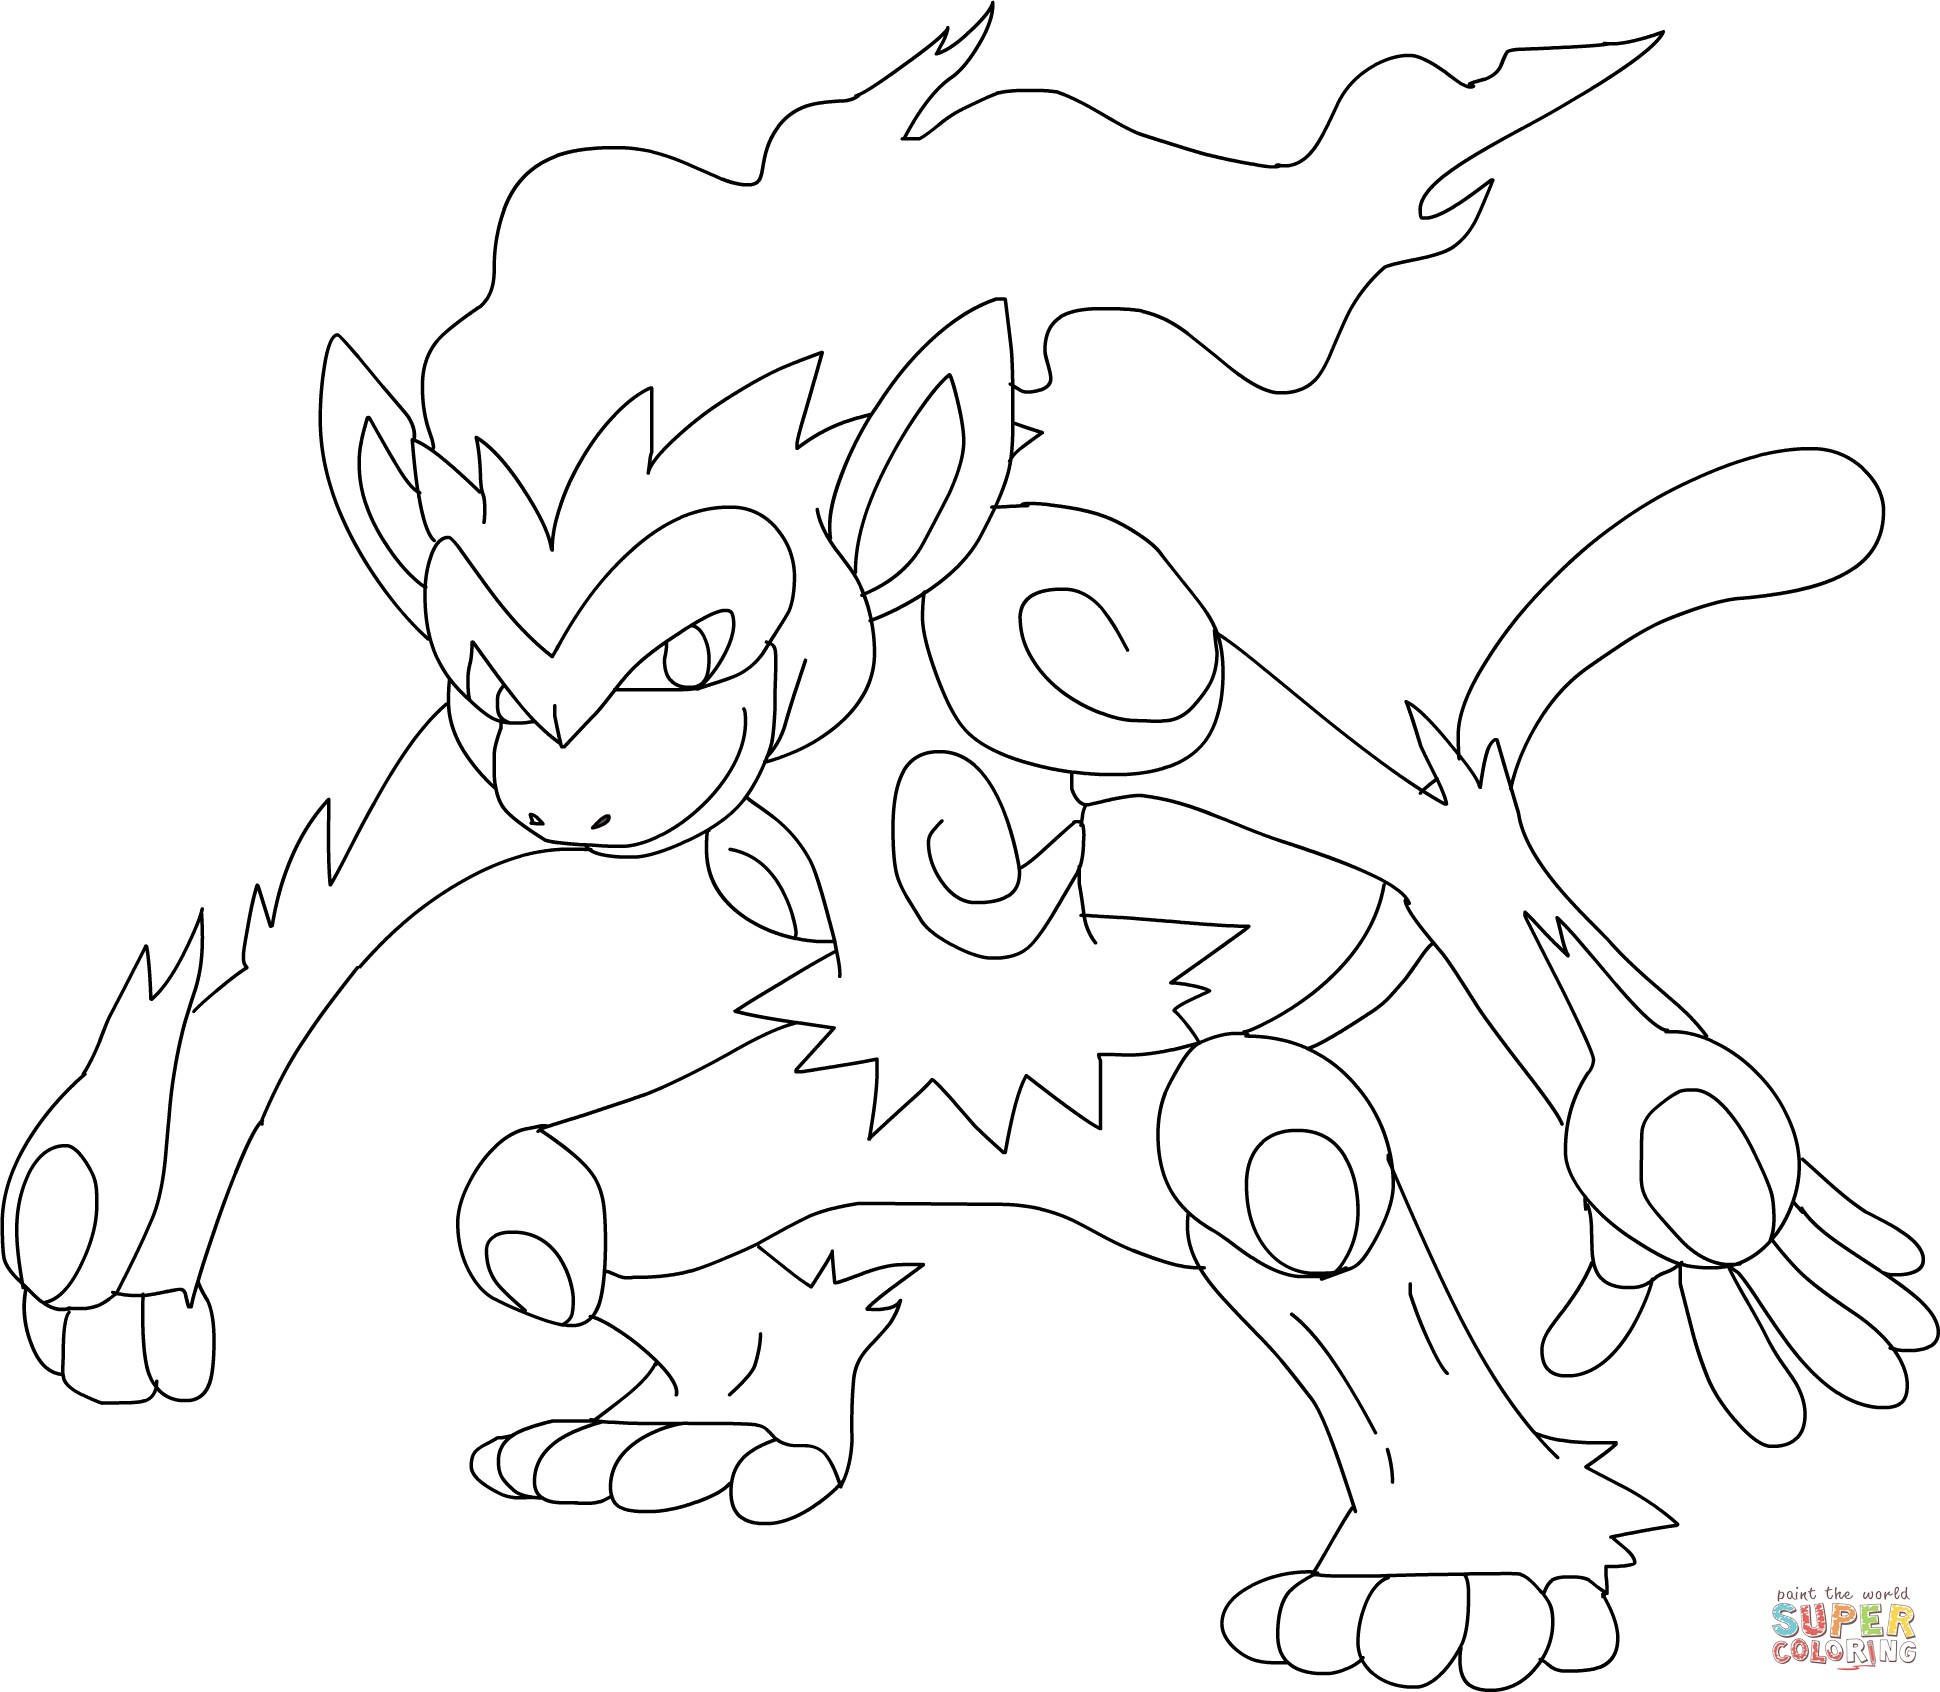 Drawing To Color At Getdrawings Com Free For Personal